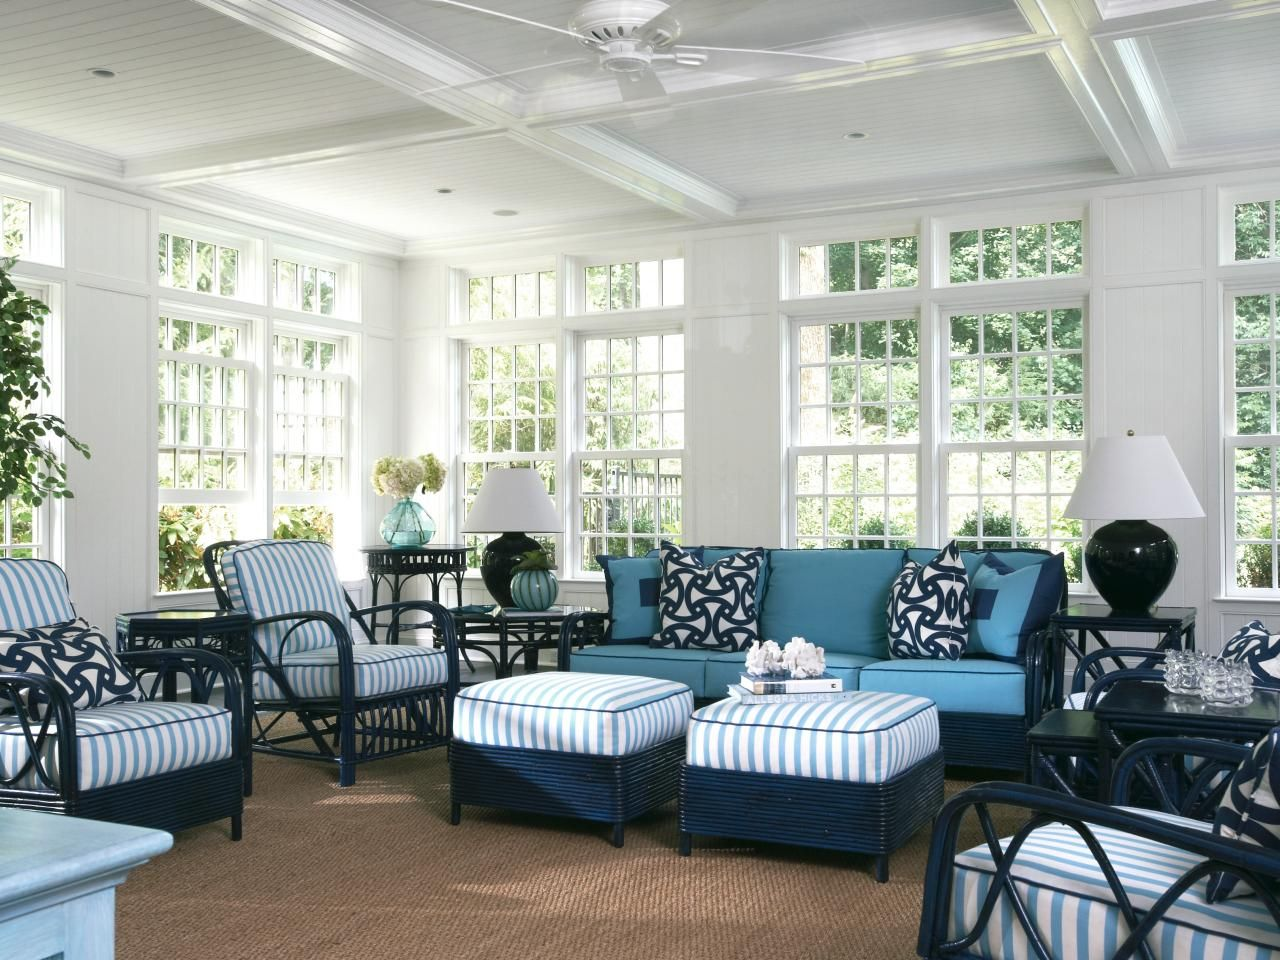 Sunroom with Blue and White Wicker Furniture  HGTV  Sunroom